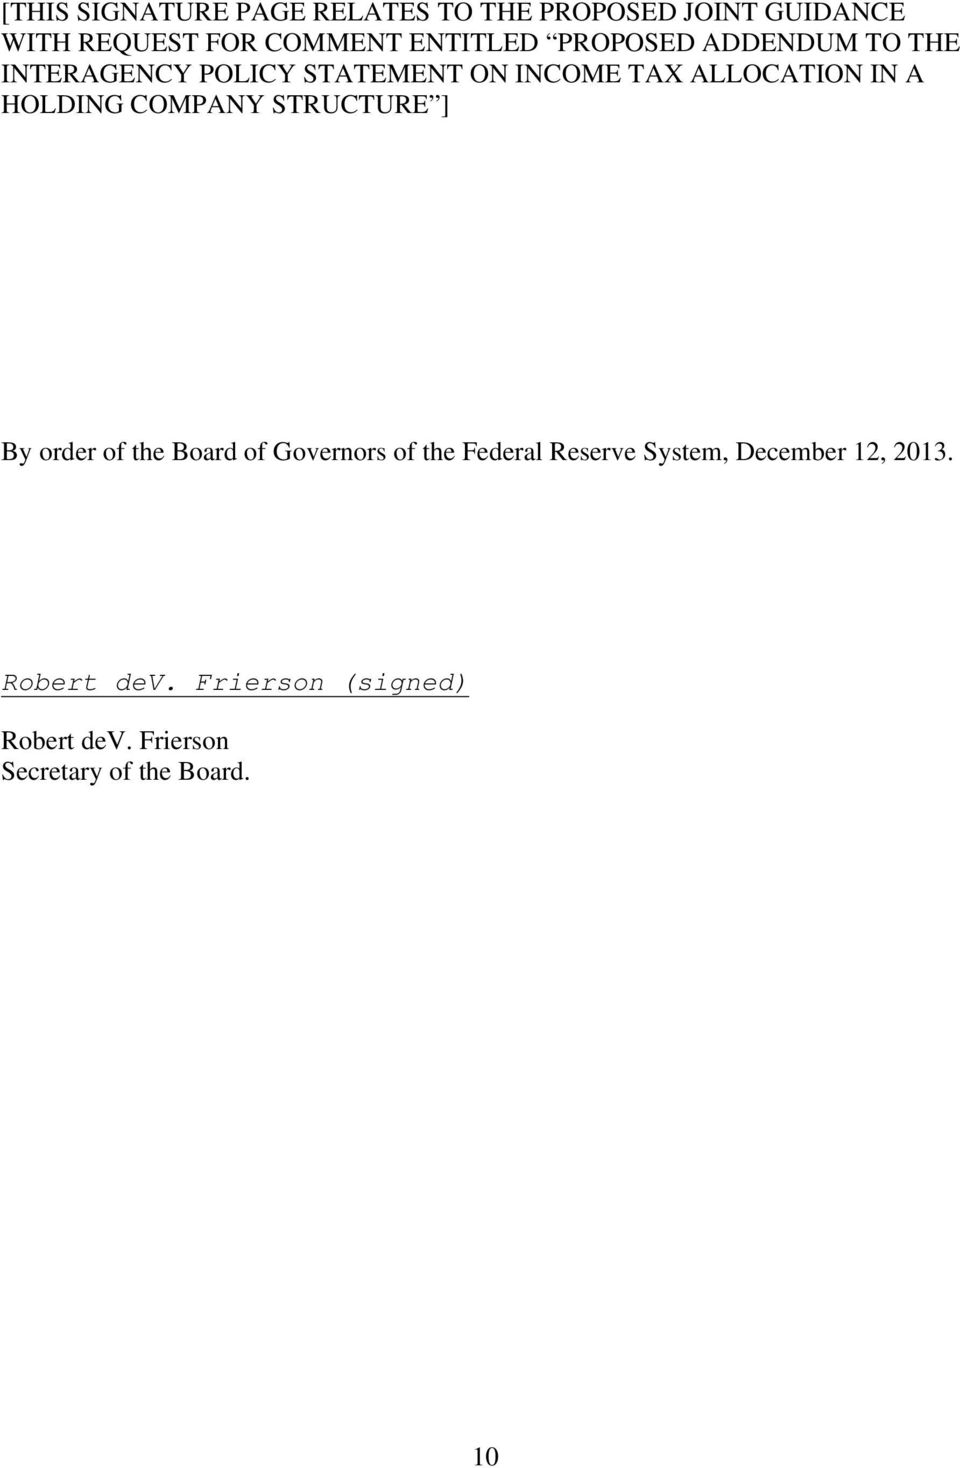 A HOLDING COMPANY STRUCTURE ] By order of the Board of Governors of the Federal Reserve